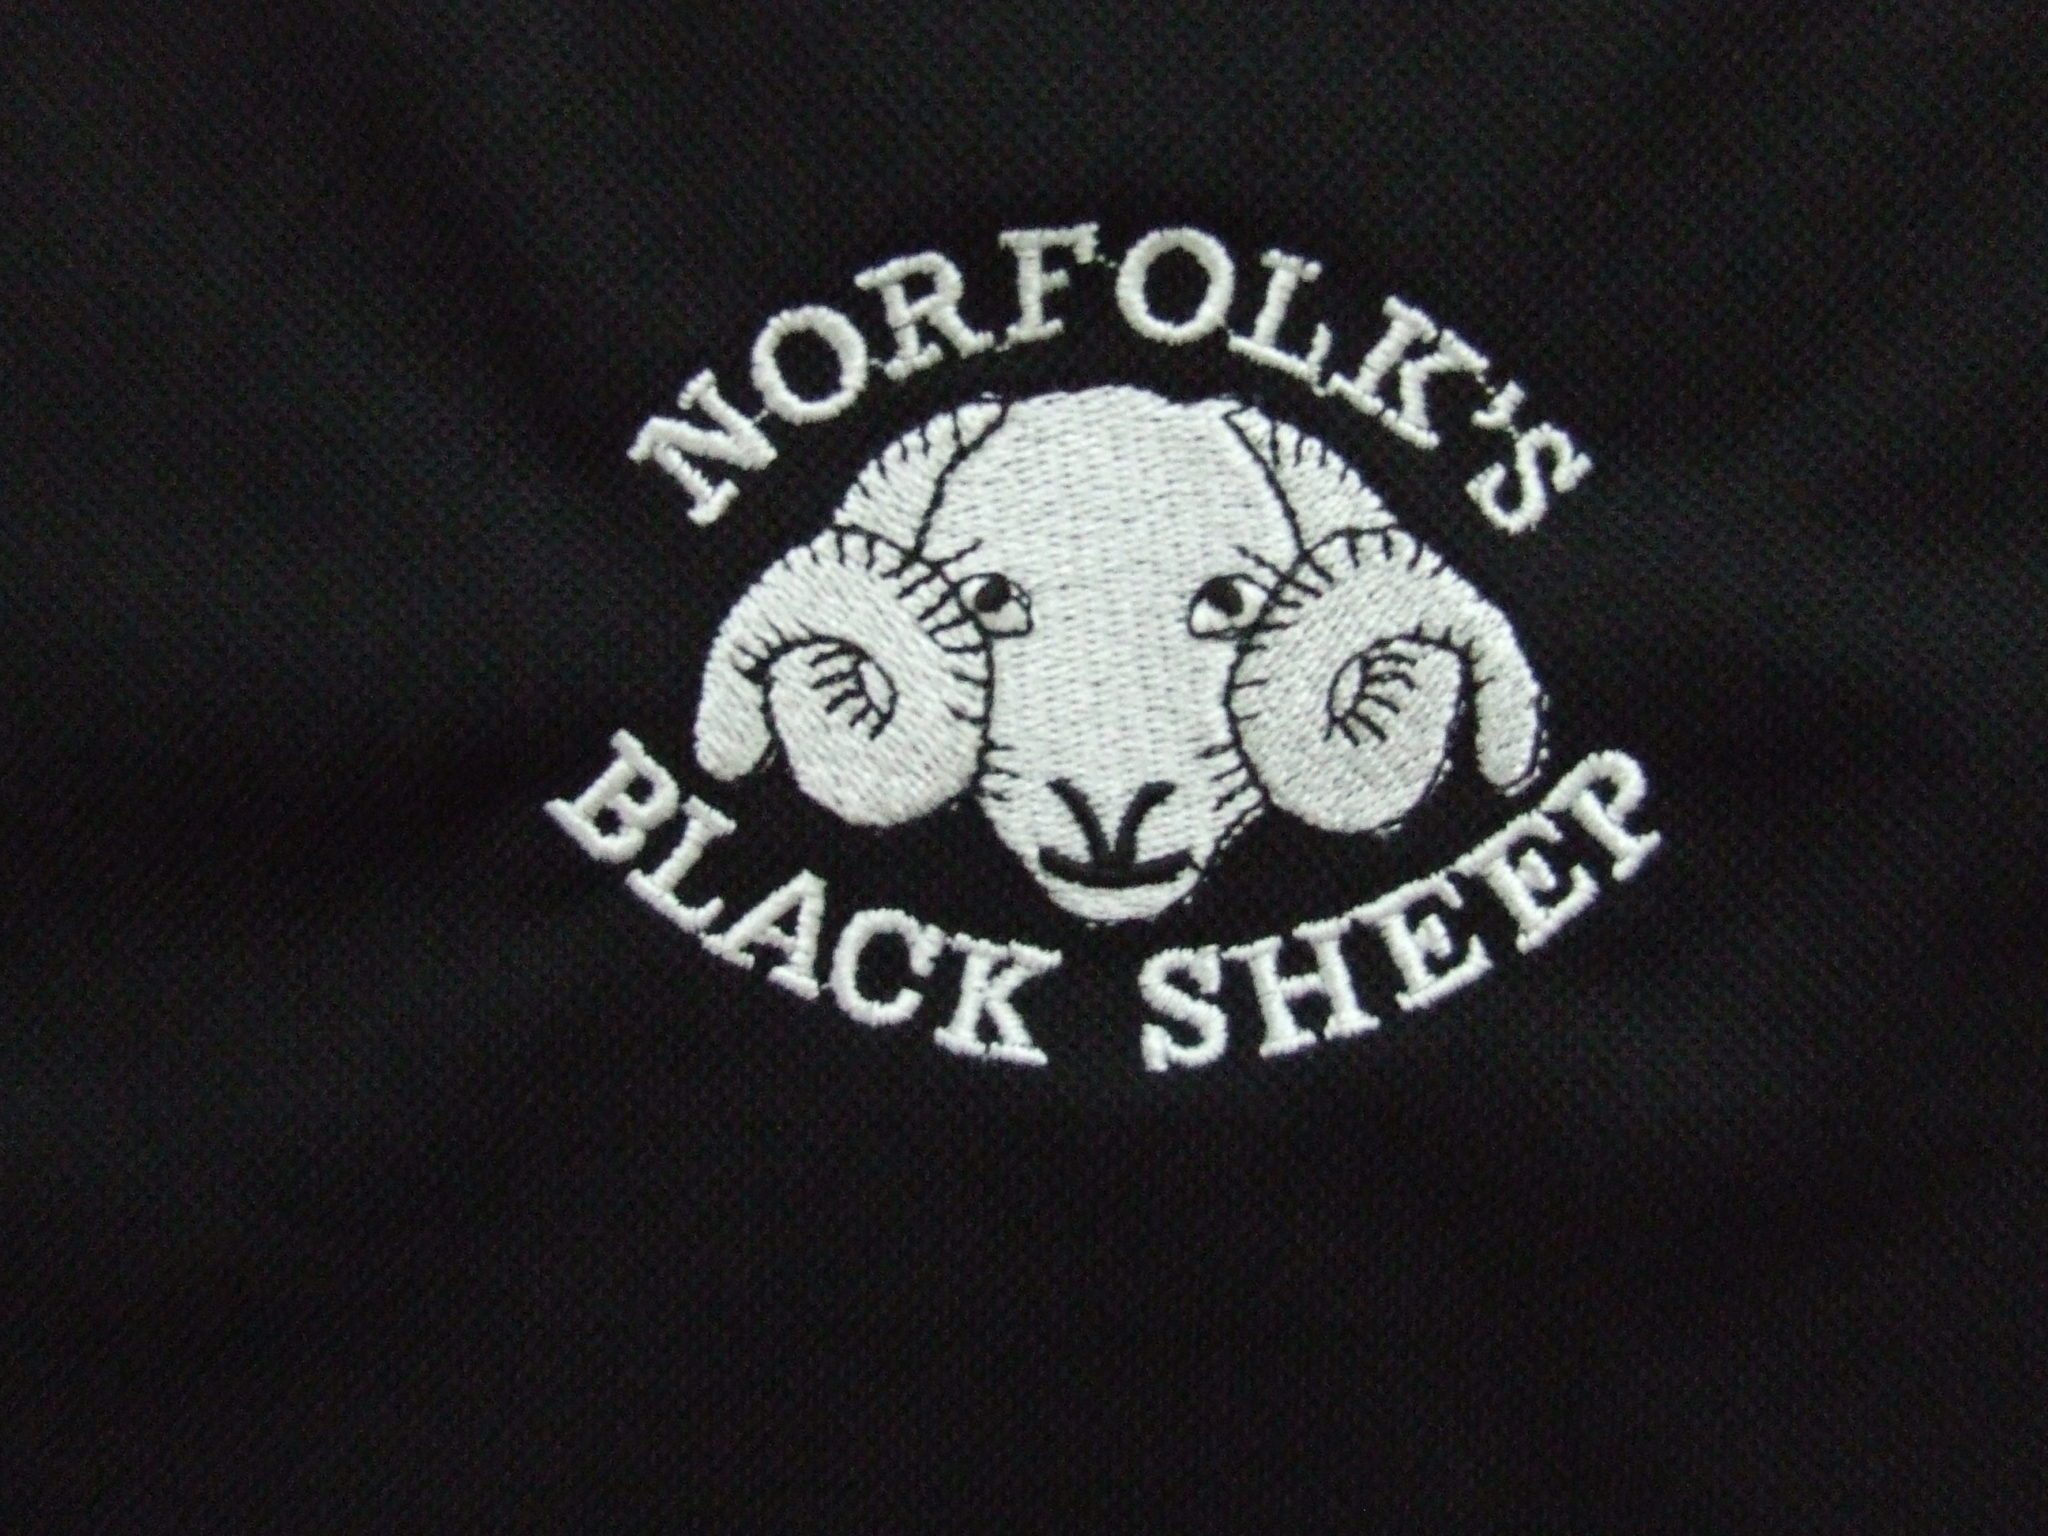 Detail of Black Sheep logo on polo shirt